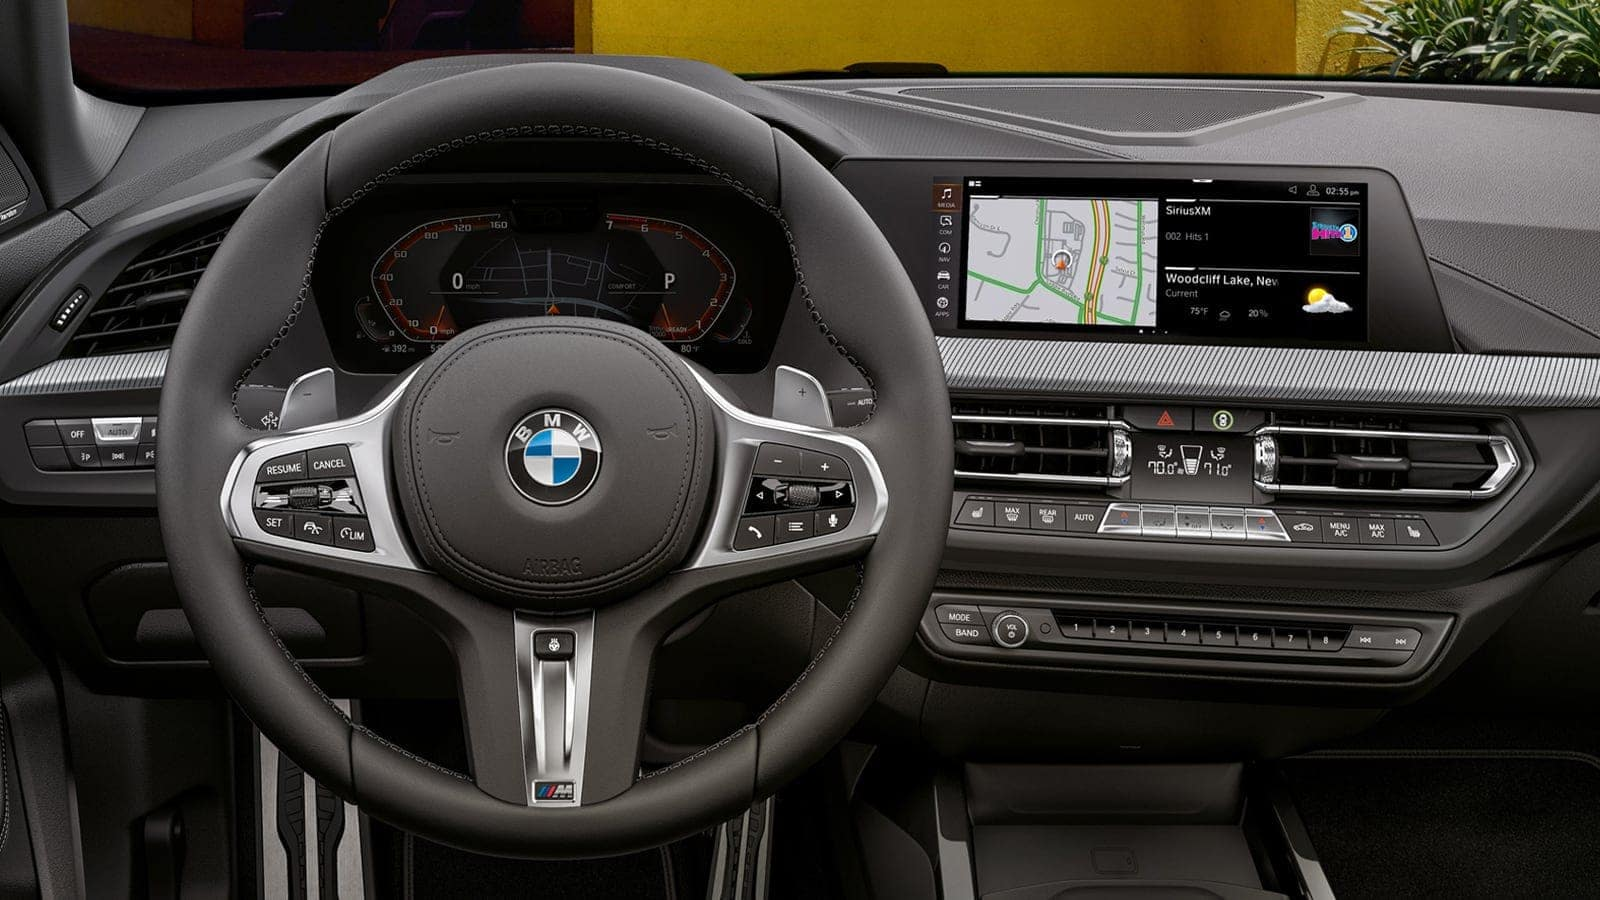 2Series front dashboard